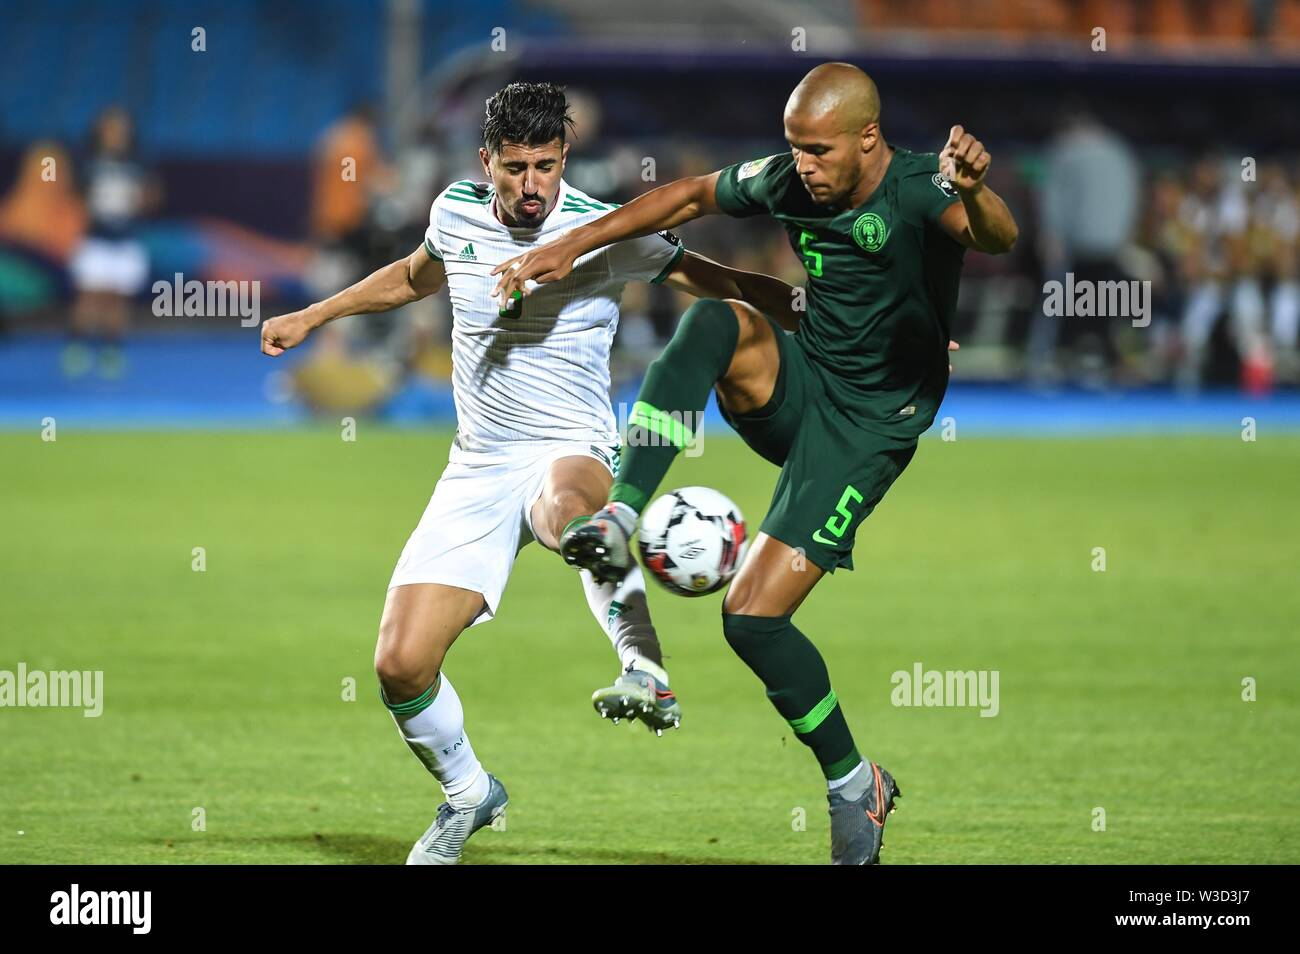 Cairo. 14th July, 2019. Baghdad Bounedjah of Algeria (L) competes with William Ekon of Nigeria during the semifinal match between Algeria and Nigeria at the 2019 Africa Cup of Nations in Cairo, Egypt on July 14, 2019. Credit: Li Yan/Xinhua/Alamy Live News - Stock Image